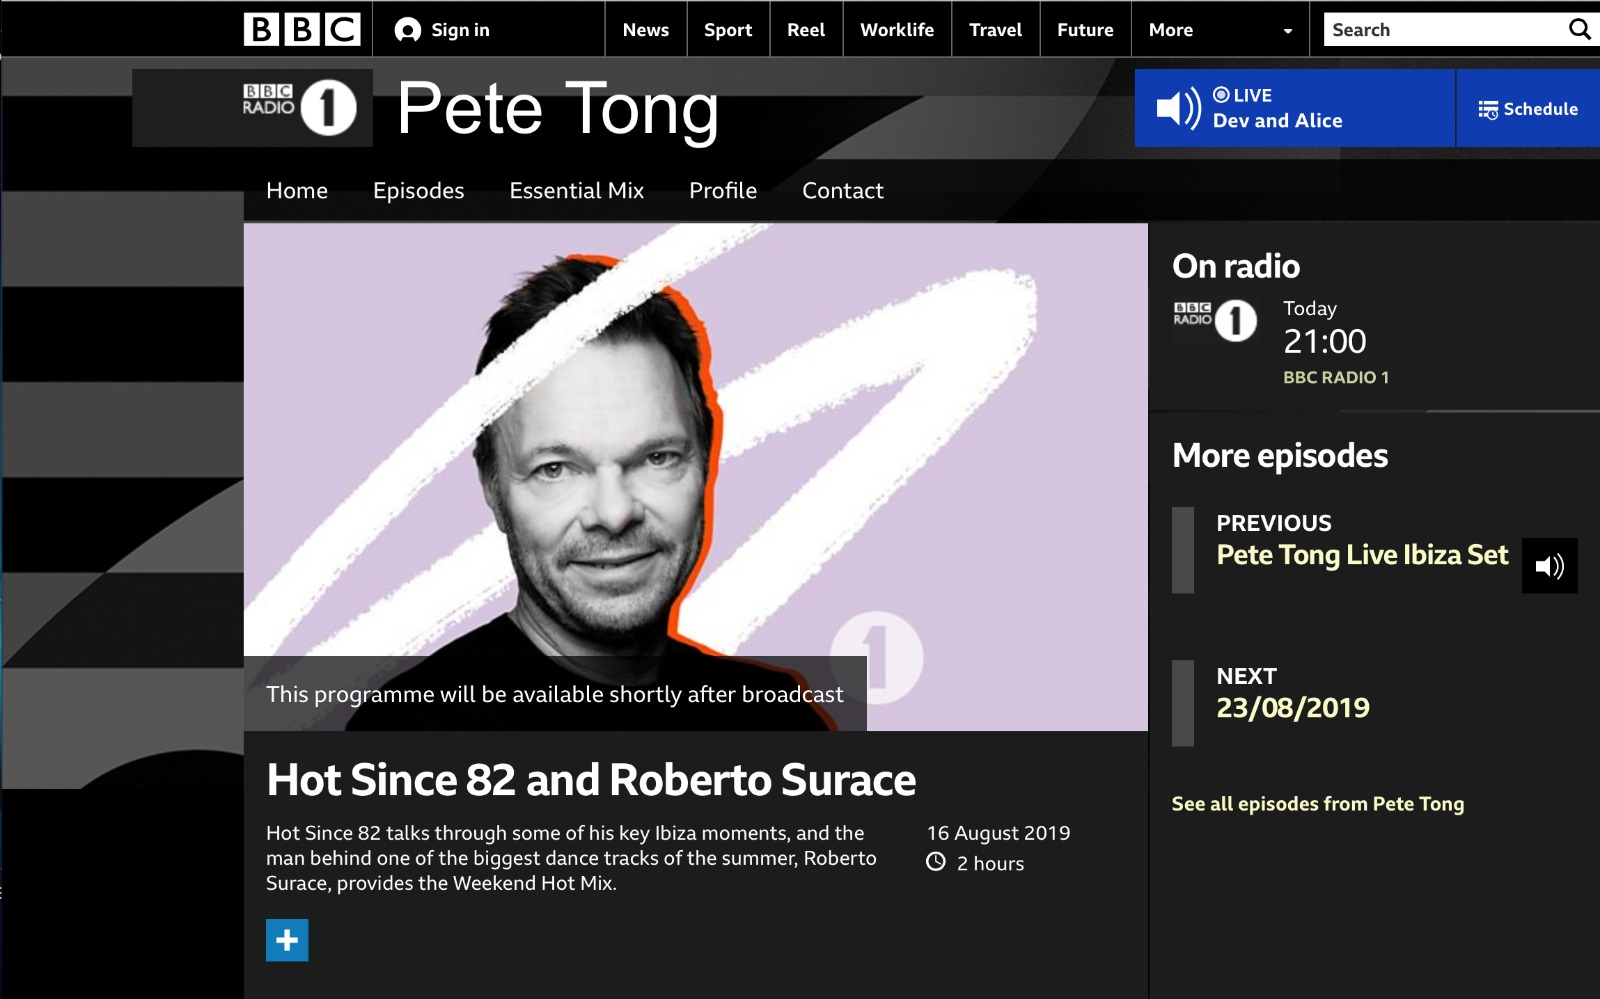 BBC Radio 1 - Pete Tong, Hot Since 82 and Roberto Surace